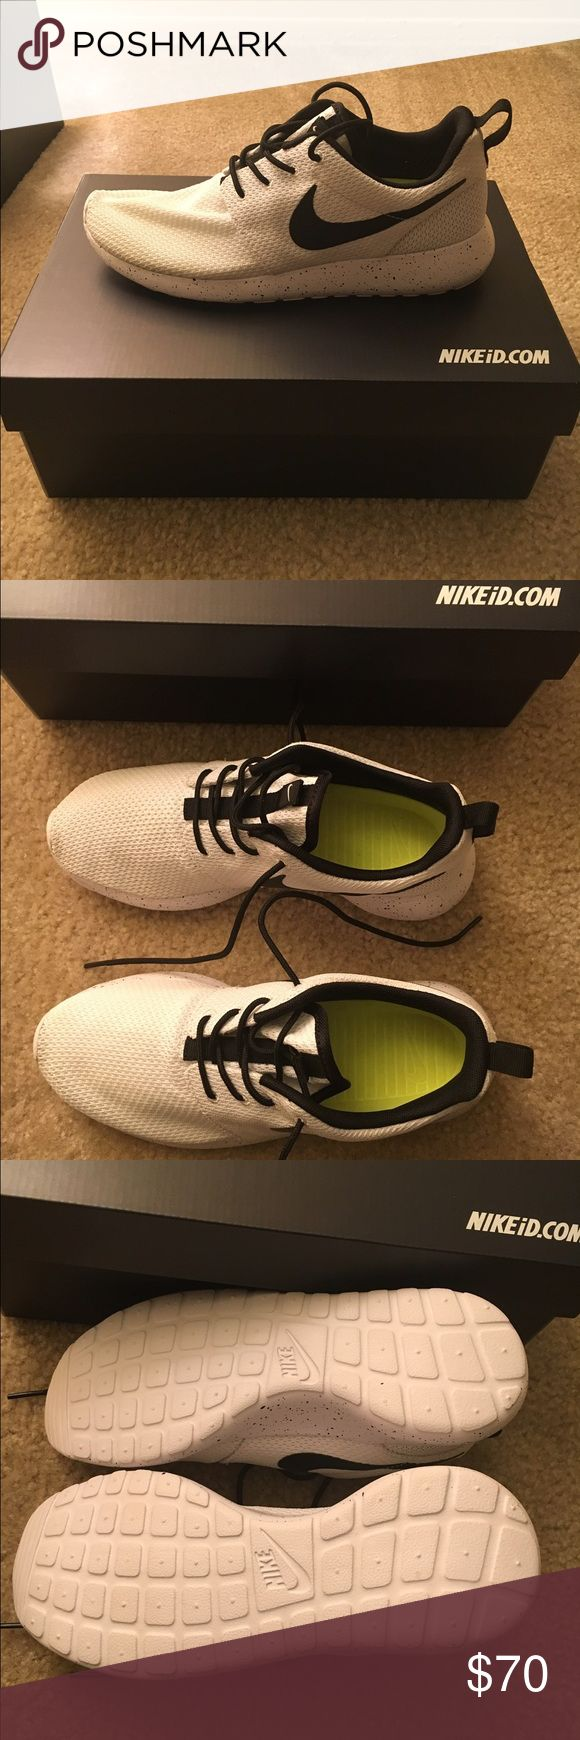 Nike Roshe One Brand new Nike ID Roshe One with box. All white with black accents and a black swoosh, featuring a white midsole with black speckles. Nike Shoes Athletic Shoes